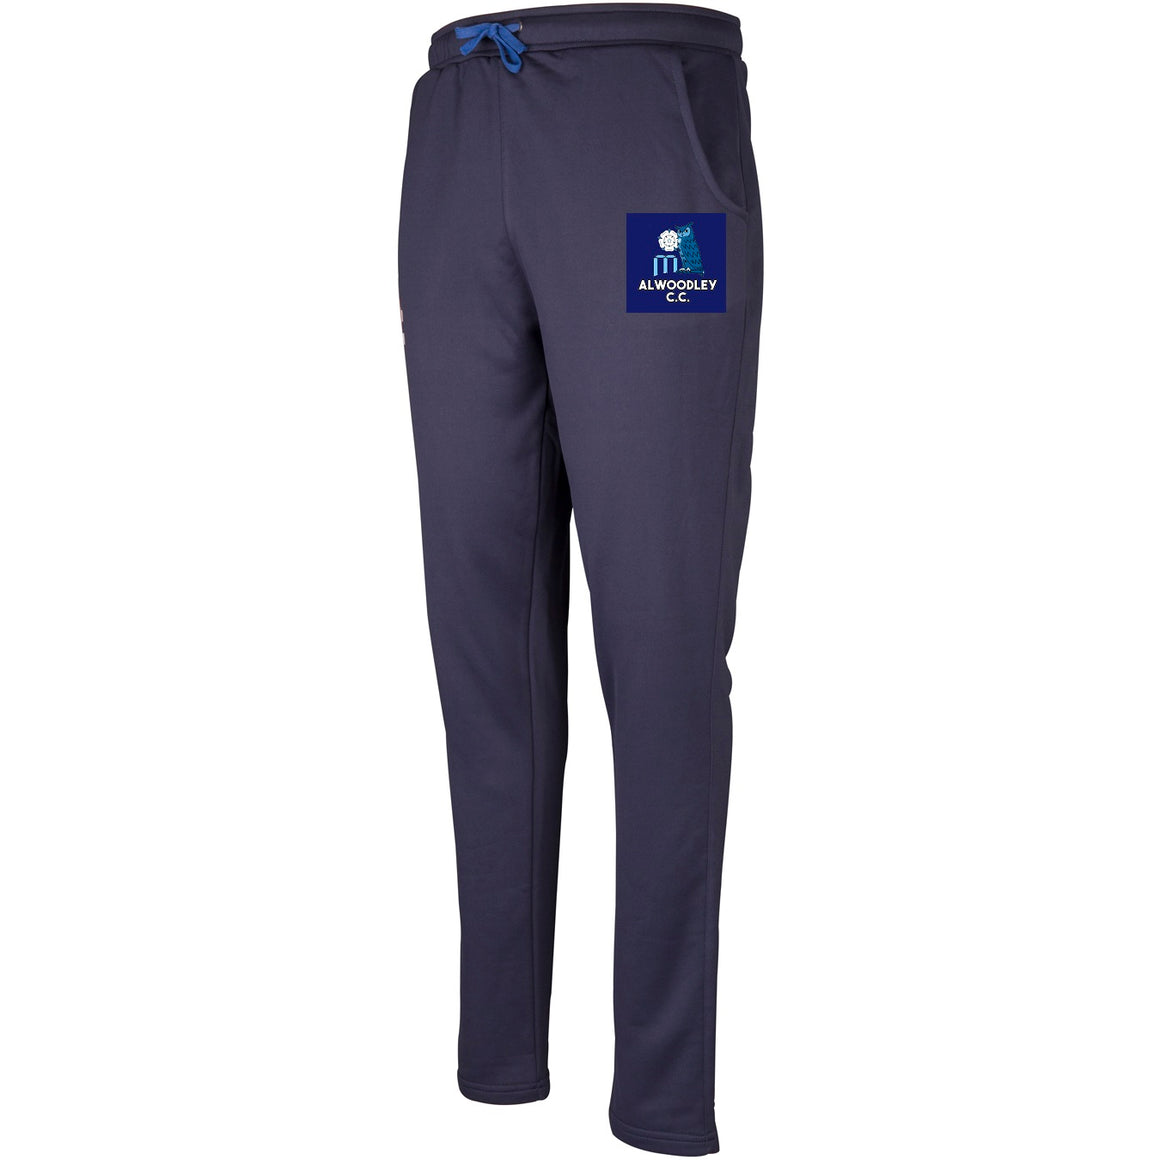 Alwoodley Pro Performance Training Pants